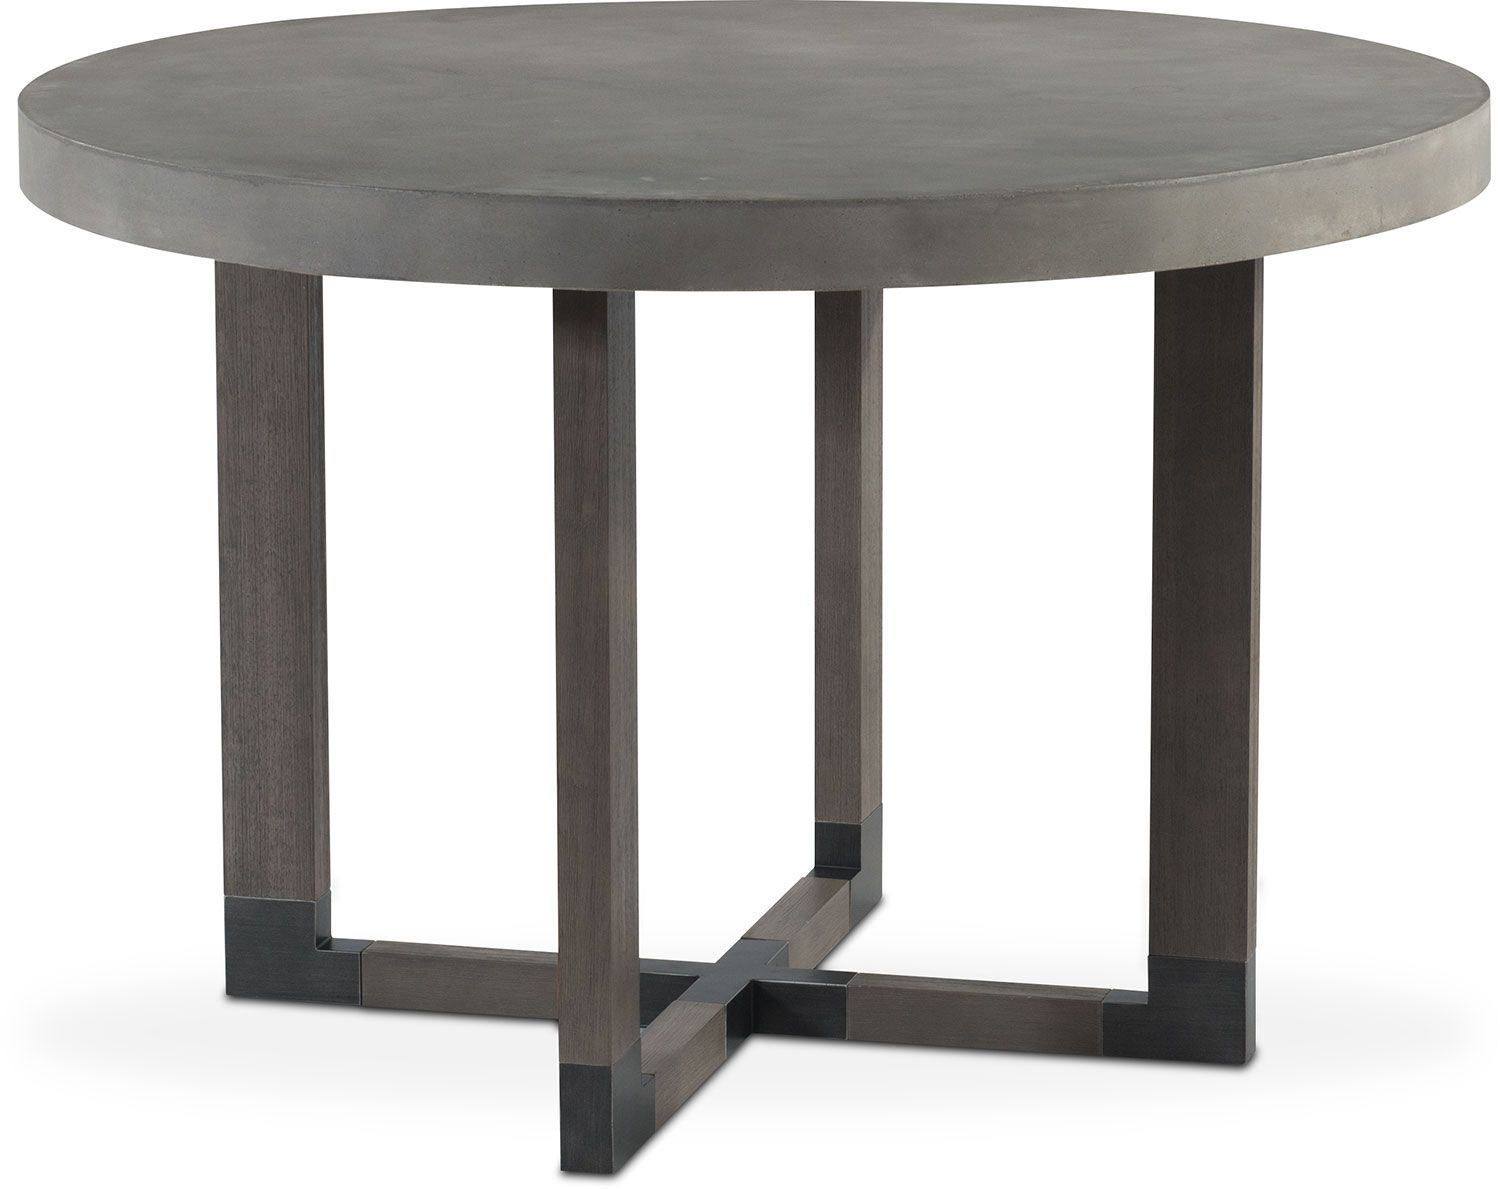 Dining Room Furniture Malibu Round Counter Height Concrete Top Table Gray Concrete Top Dining Table Counter Height Dining Table Metal Dining Table